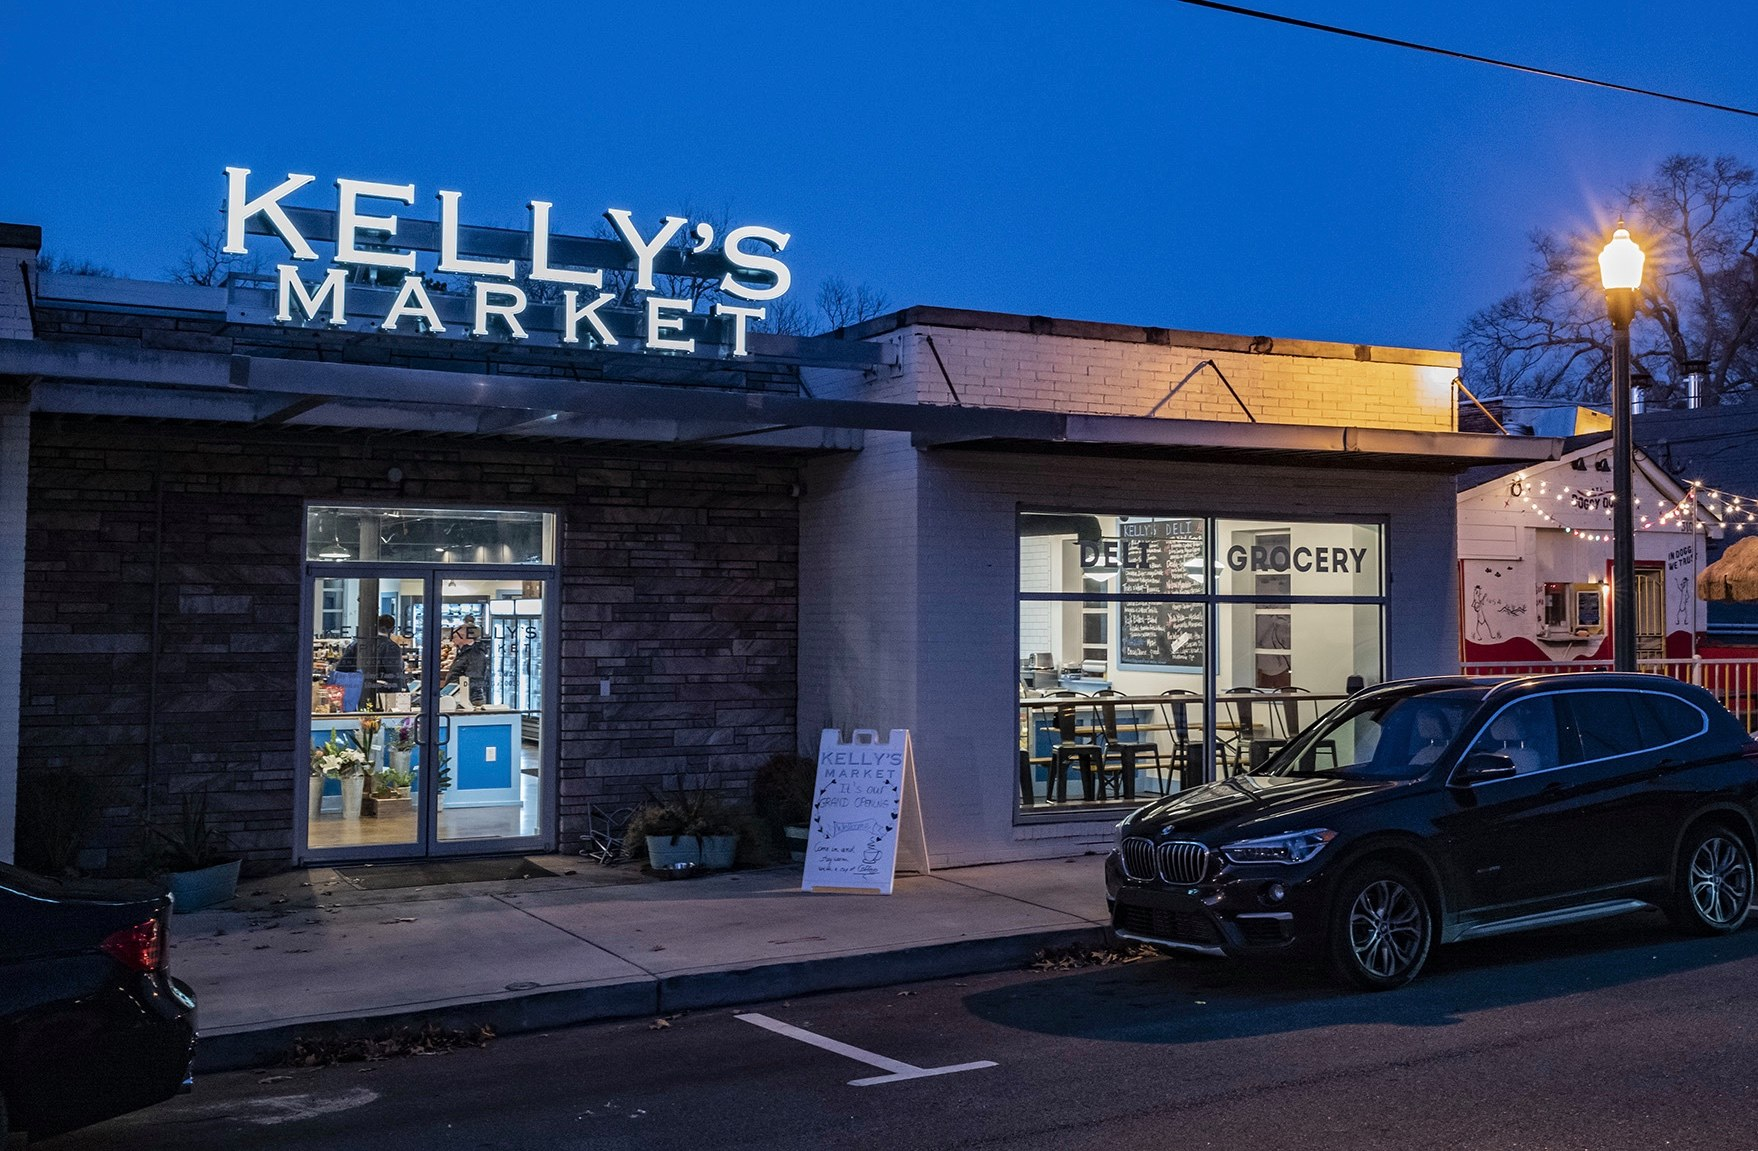 Kelly's Market opens across from Kimball House in Decatur